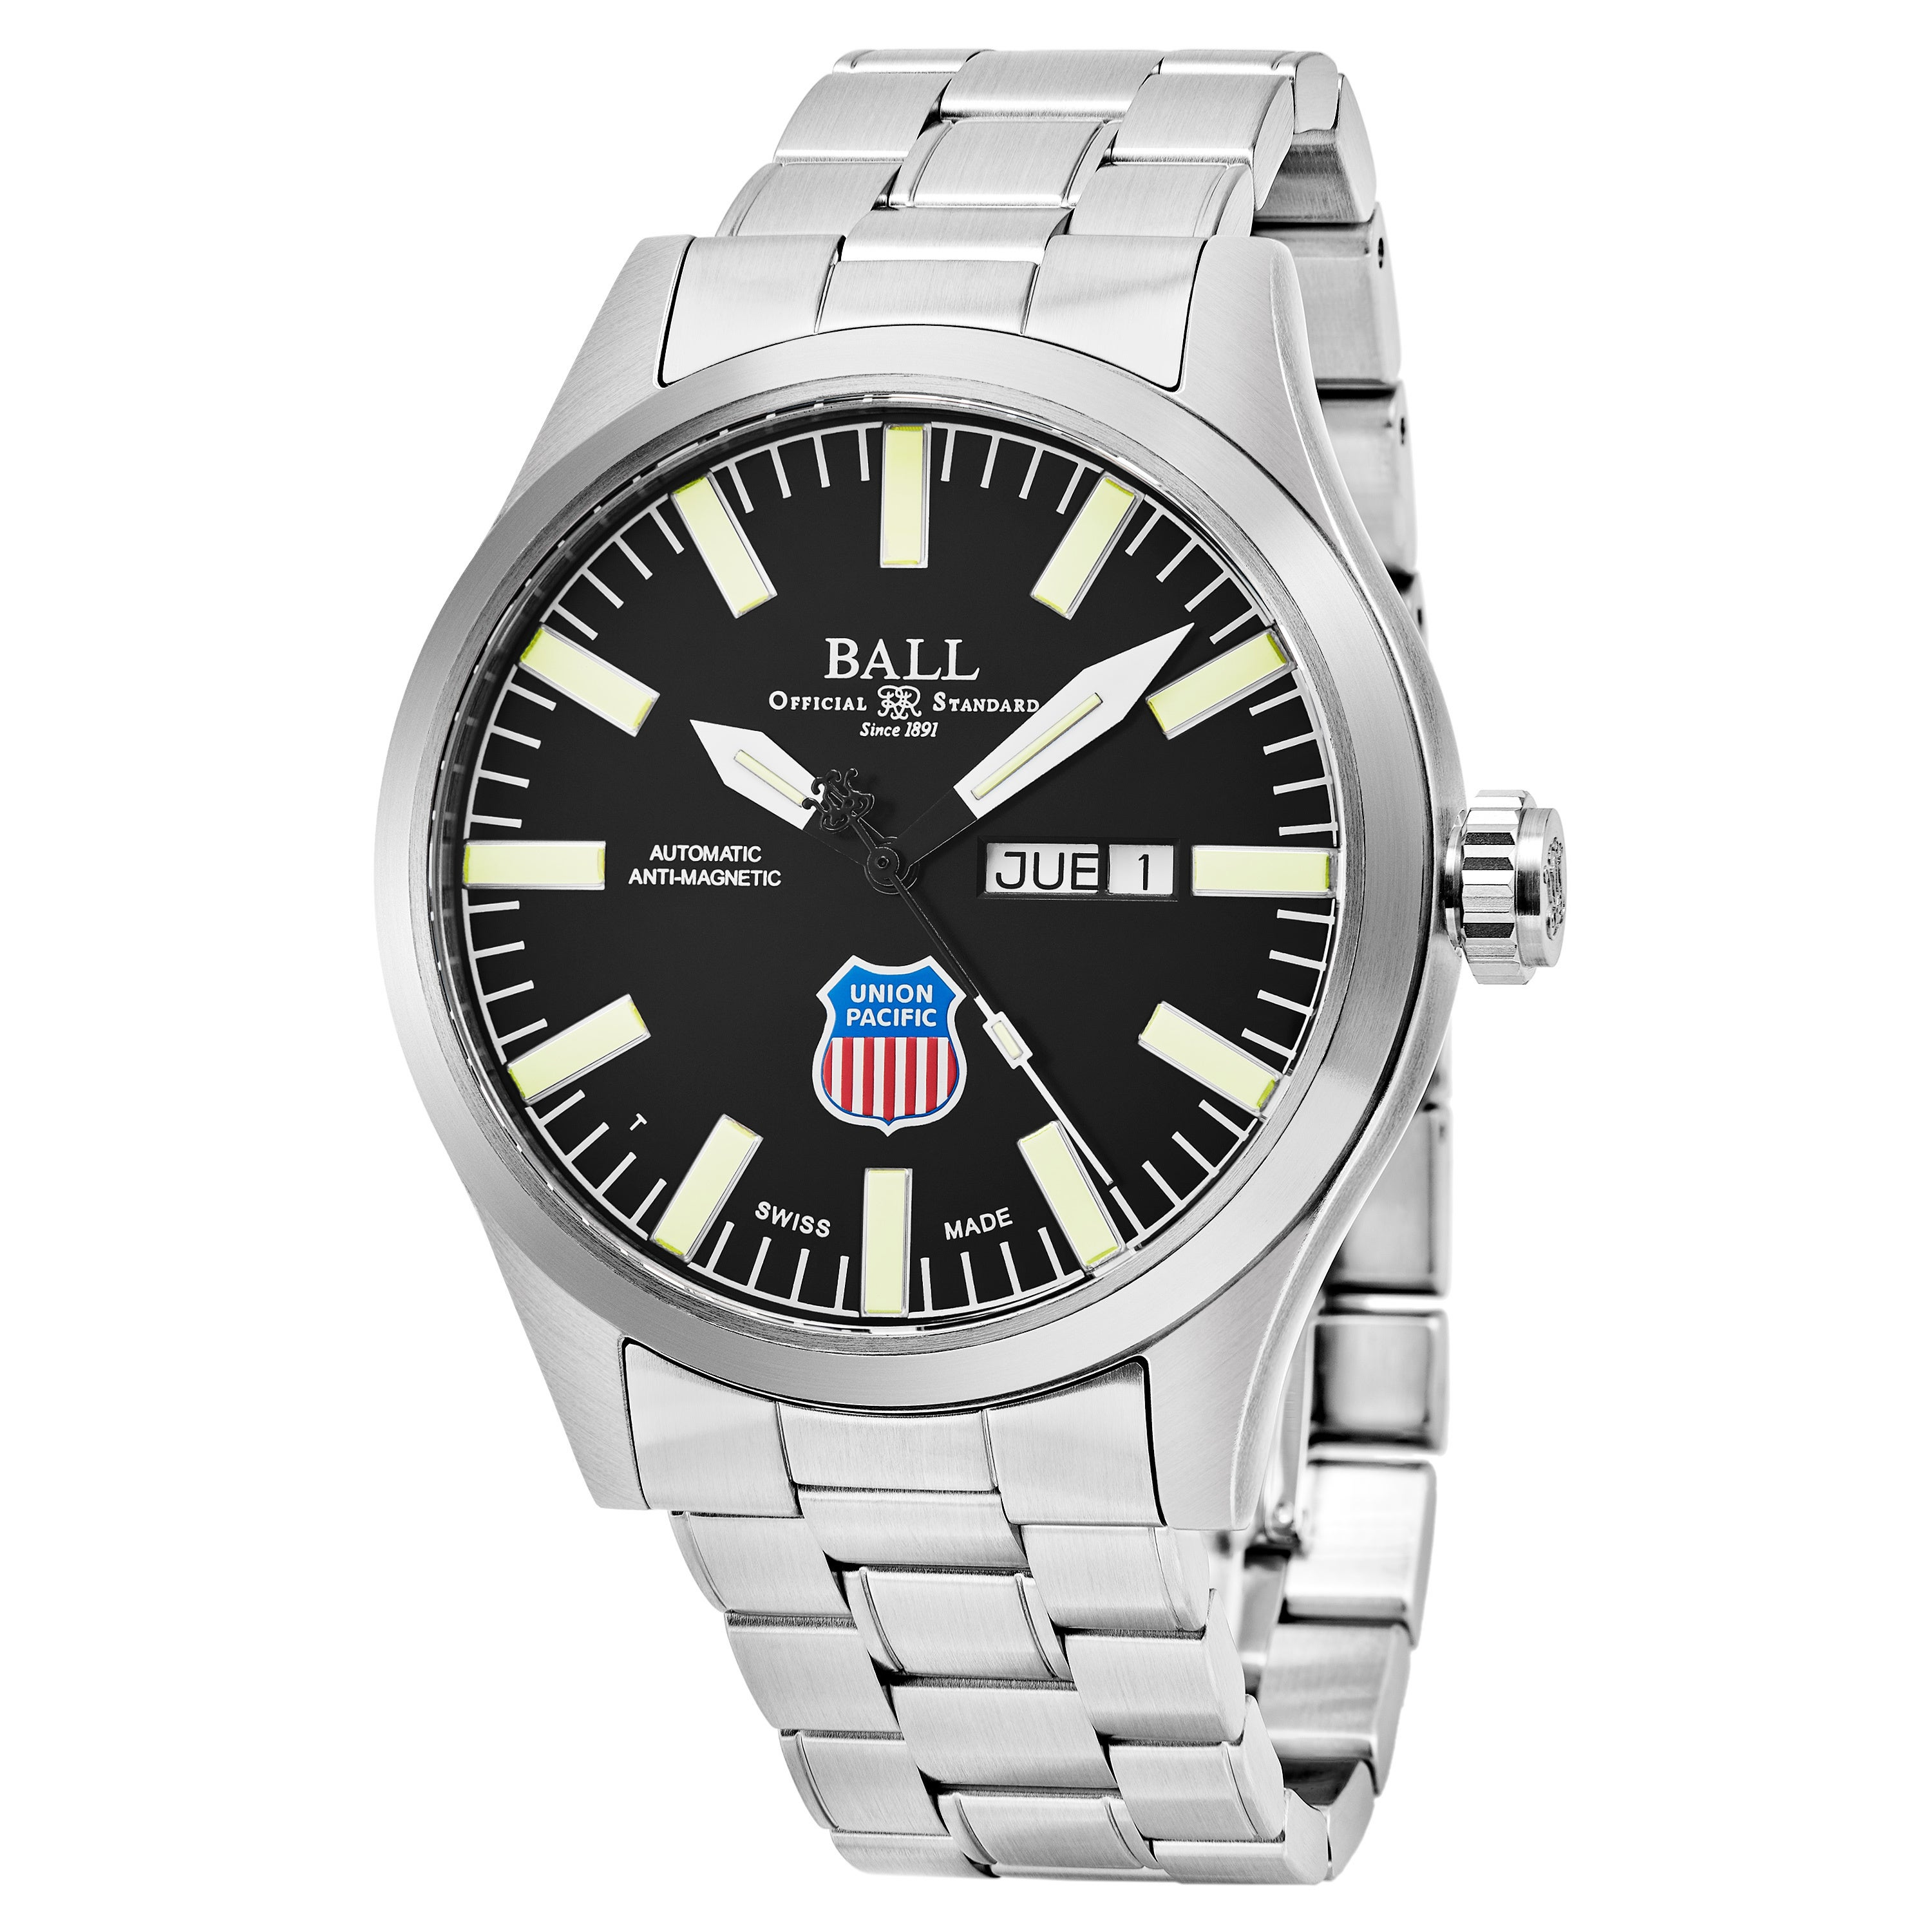 7bbfab72f Shop Ball Men's NM1080C-S2-BK 'Engineer II Big Boy' Black Dial Stainless  Steel Swiss Automatic Watch - Free Shipping Today - Overstock - 16304588